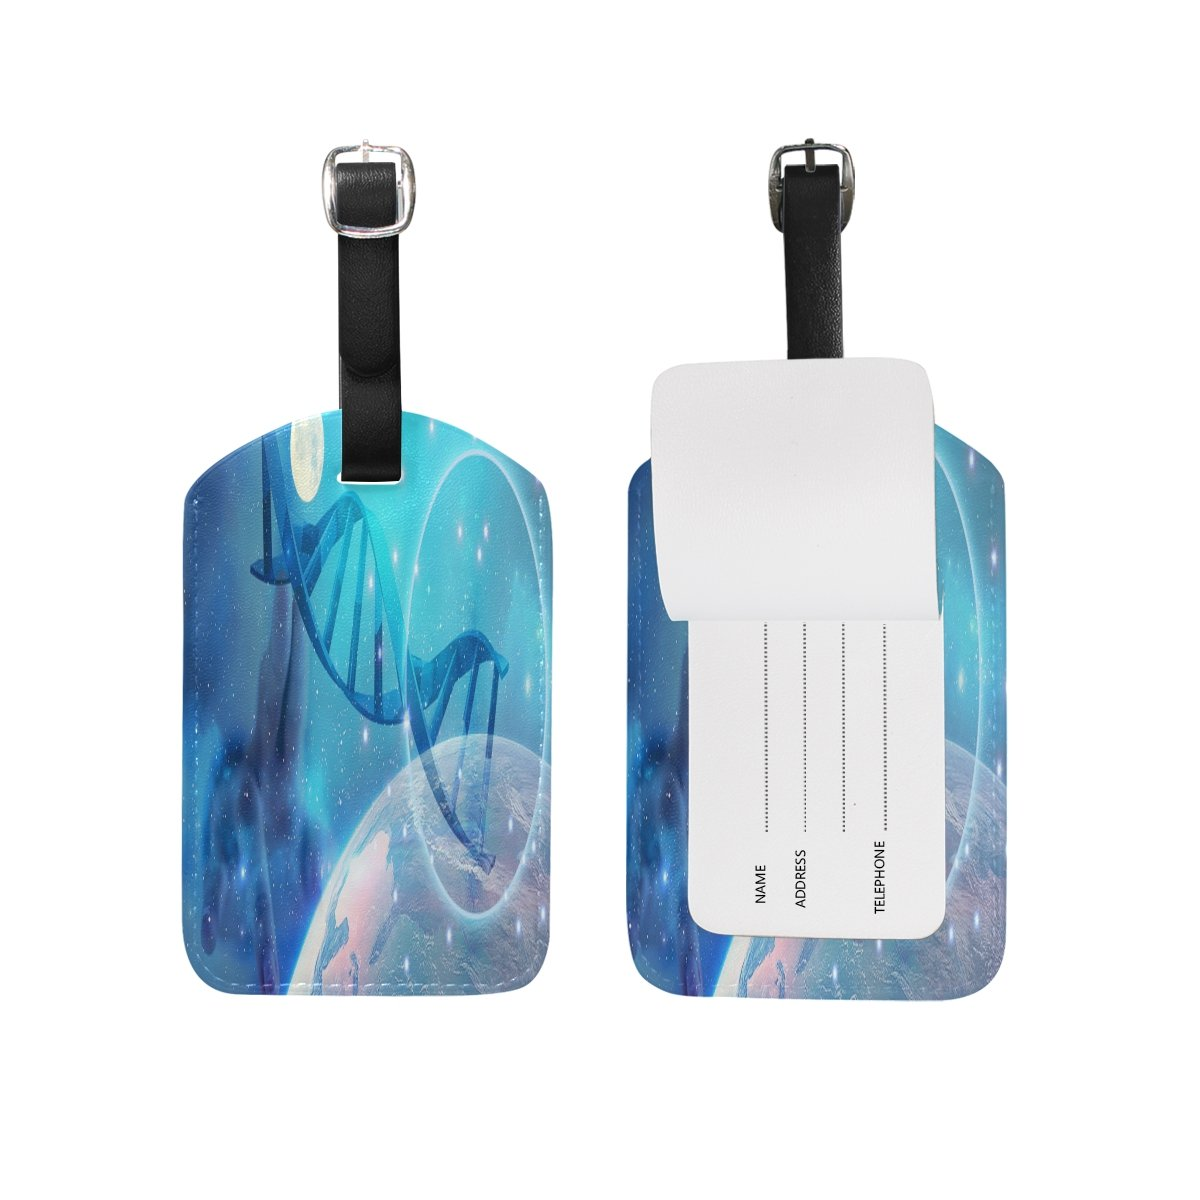 1Pcs Saobao Travel Luggage Tag Science And Technology Intelligence PU Leather Baggage Suitcase Travel ID Bag Tag